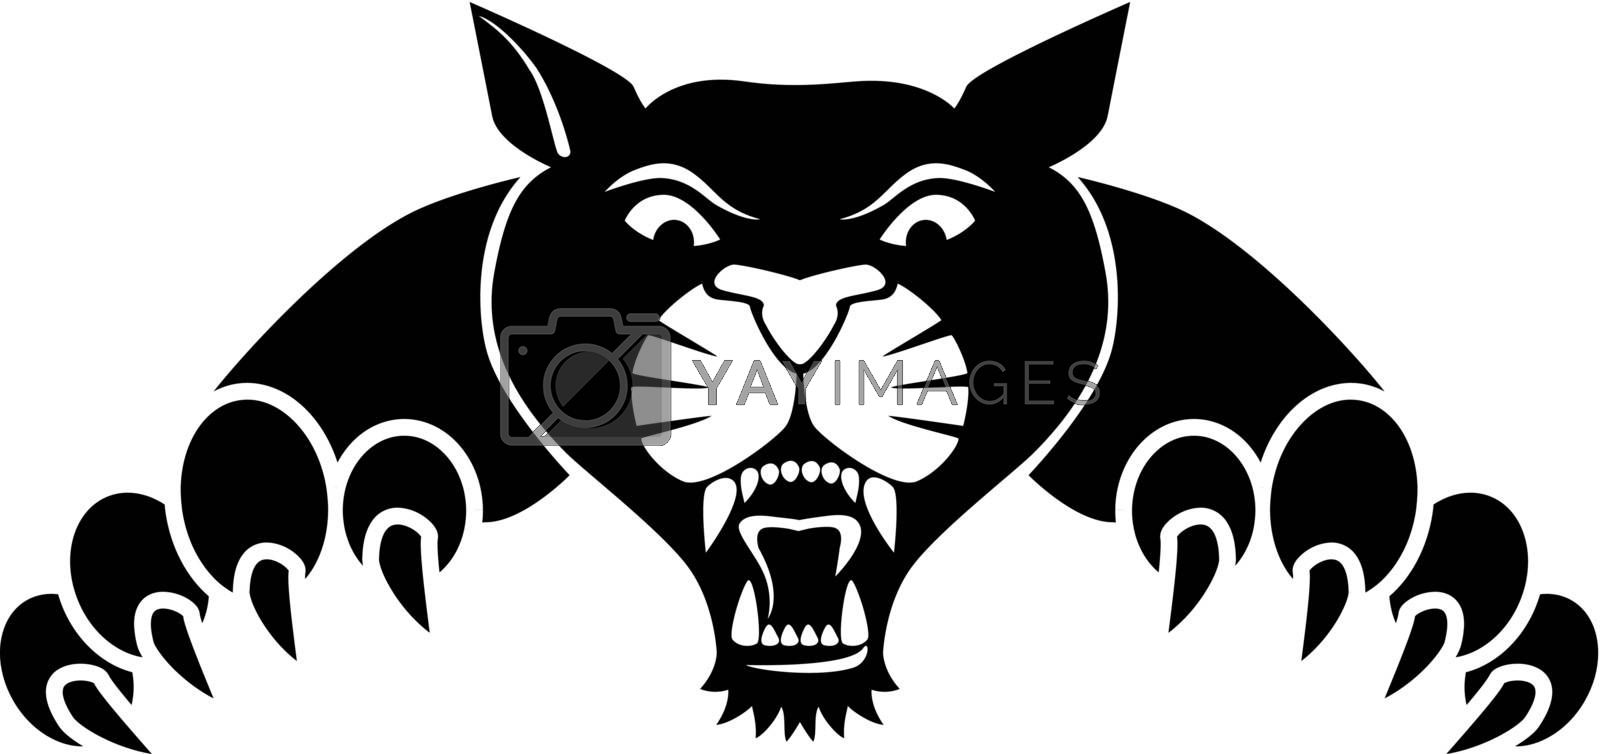 Vector illustration of Tiger silhouette